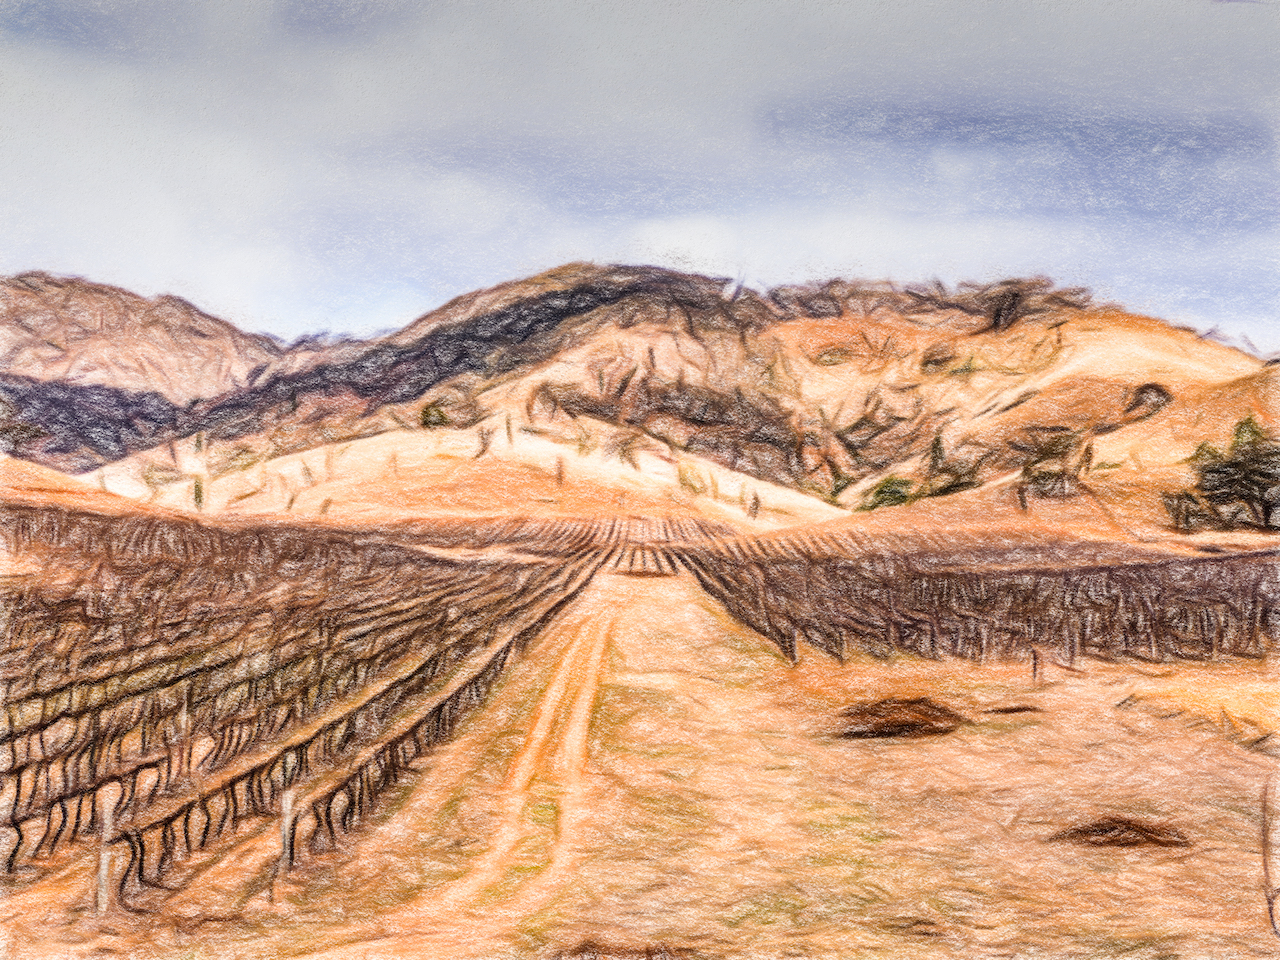 A painterly photo of vineyards set in hills.